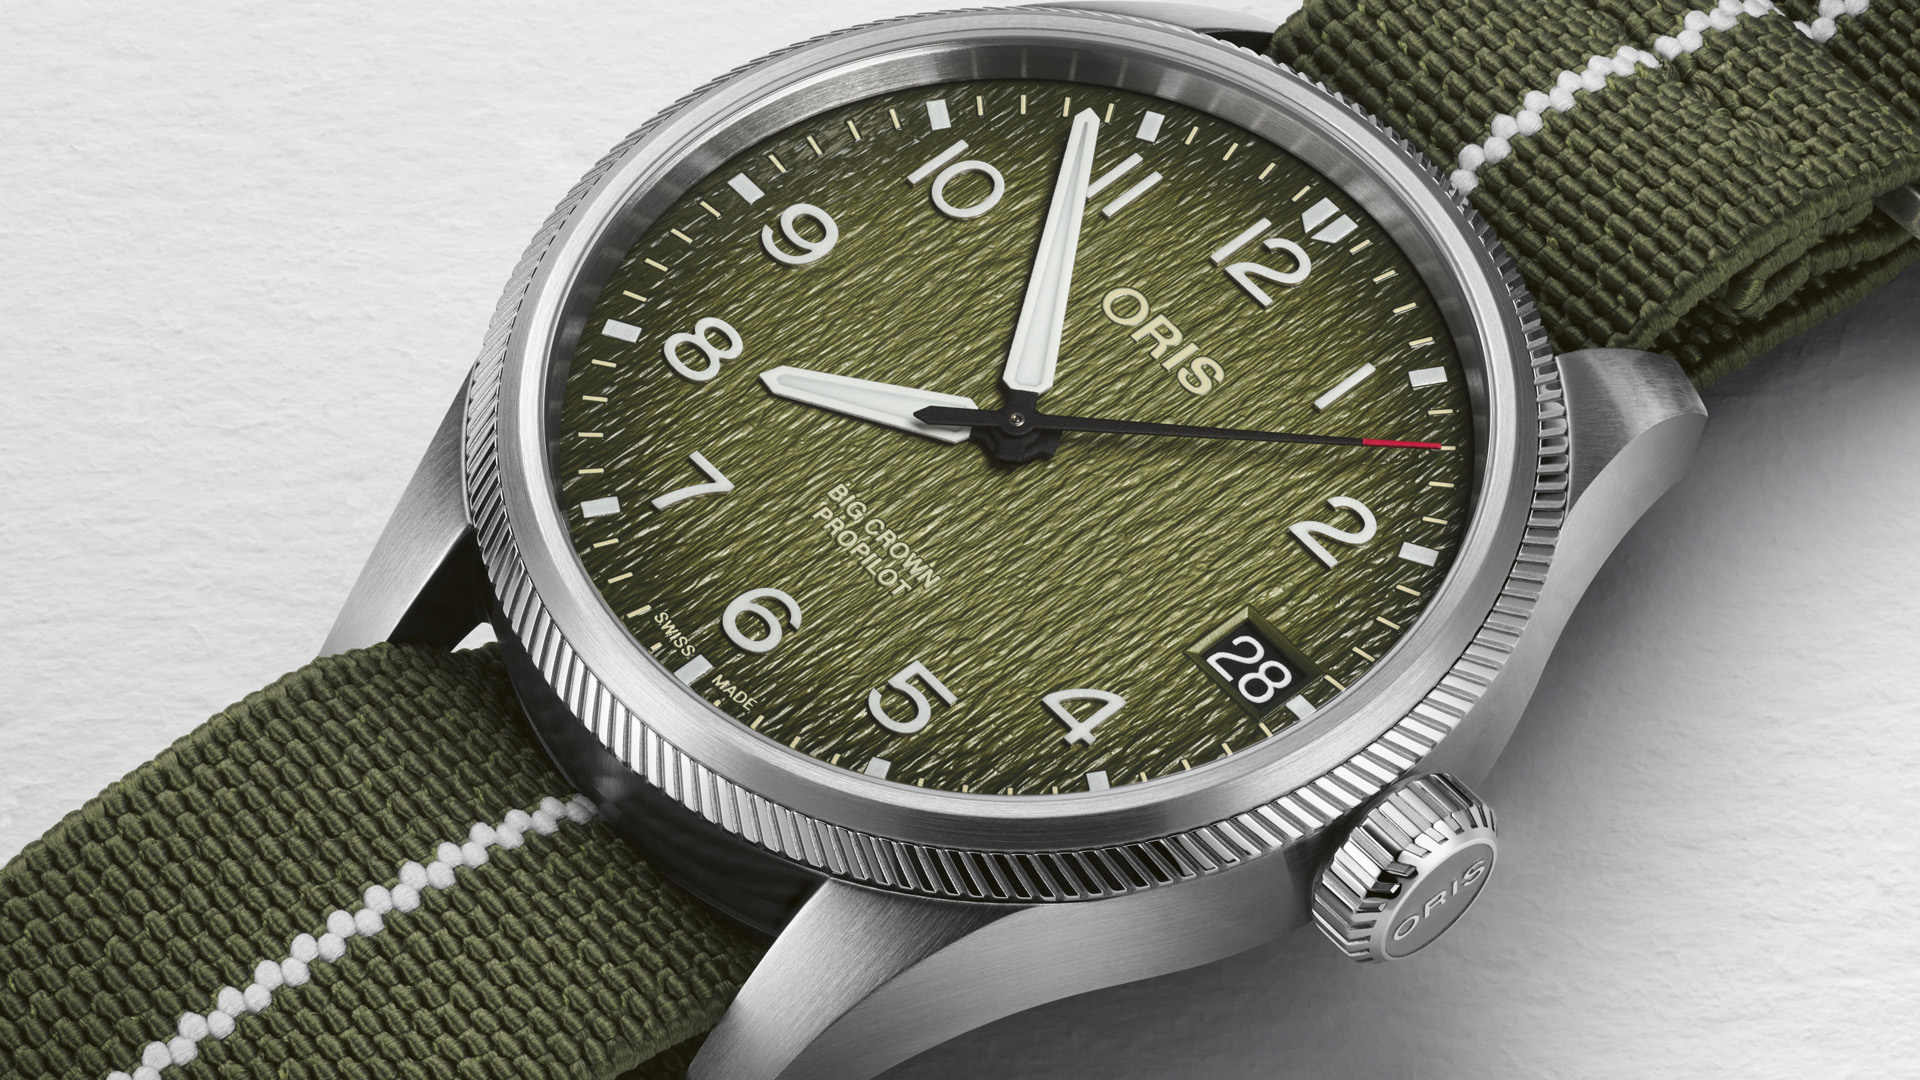 Oris produces another timepiece in its quest for change for the better